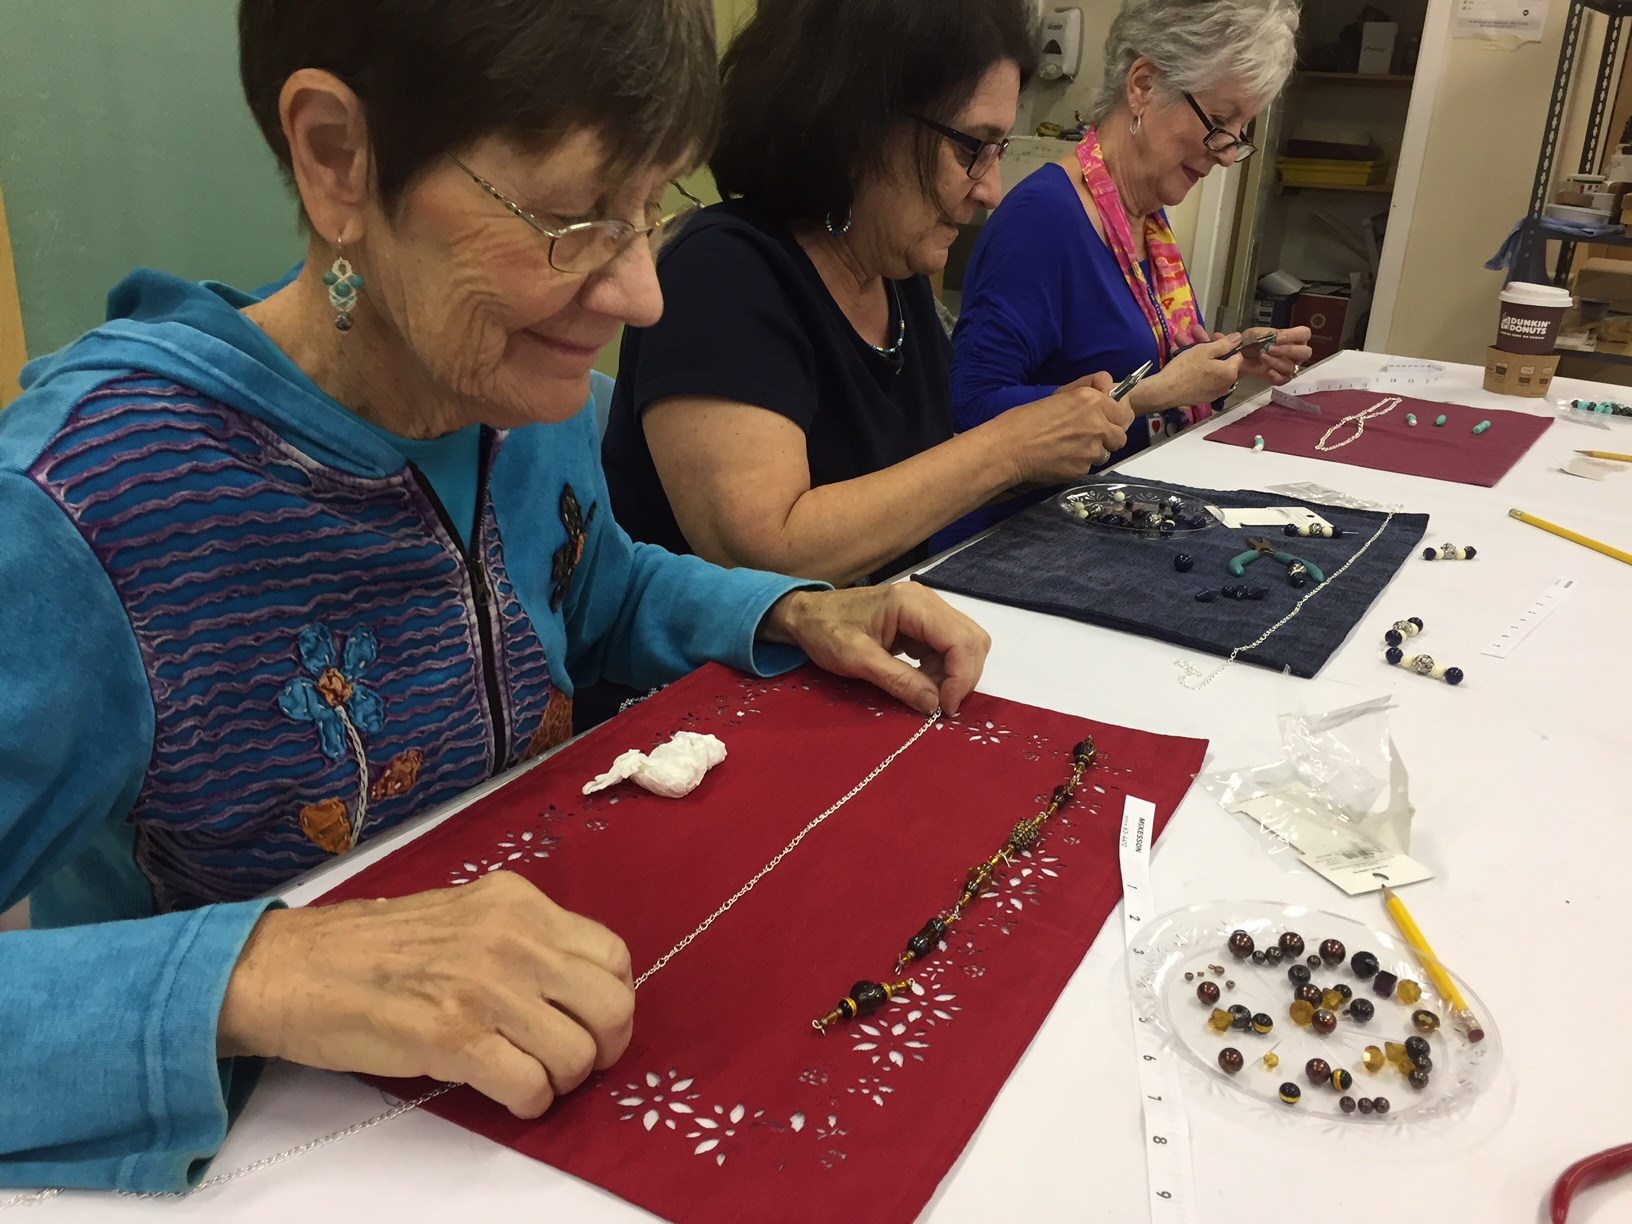 Students learn Jewelry Making at an Osher (Osher Lifelong Learning Institute at the University of Delaware) sponsored class in October, 2018 which was held at CCArts.